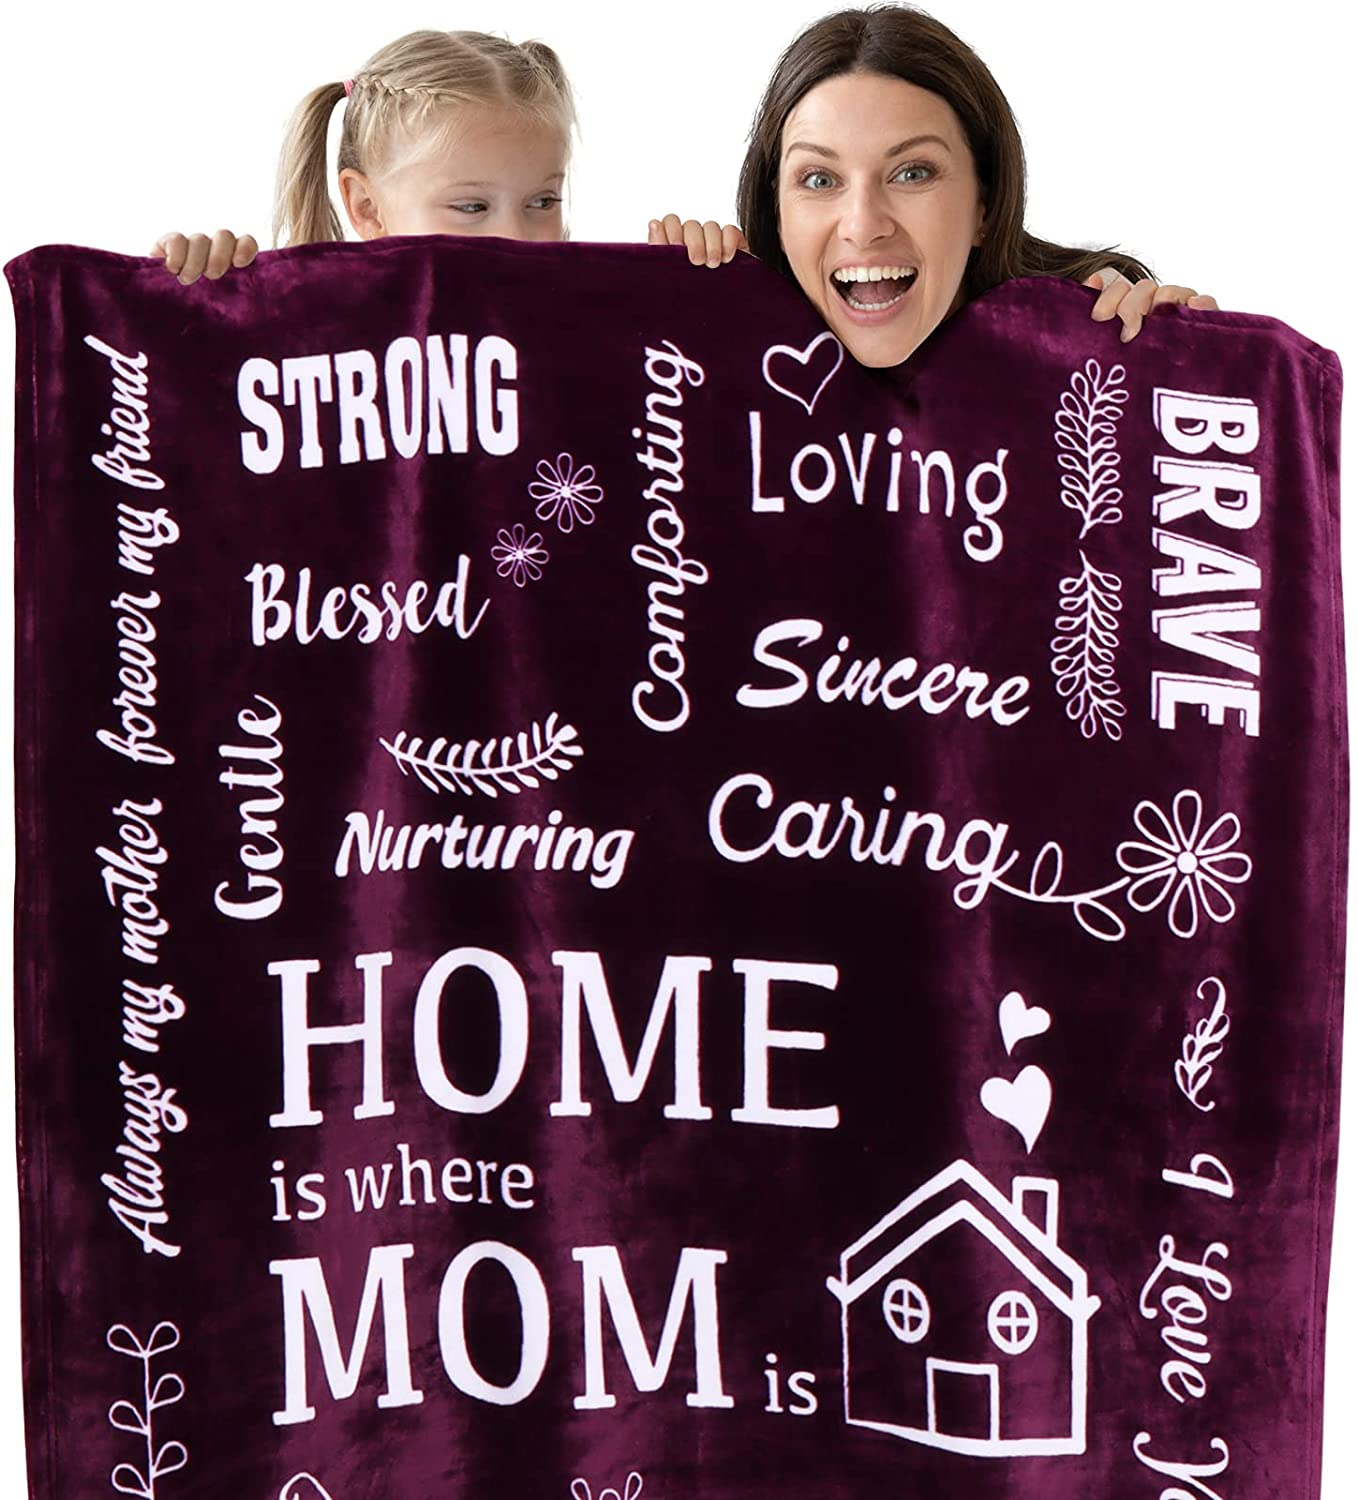 Jubeely Mom Blanket Ranking TOP16 - Soft Cozy Warm Now on sale with In Fabric Kind